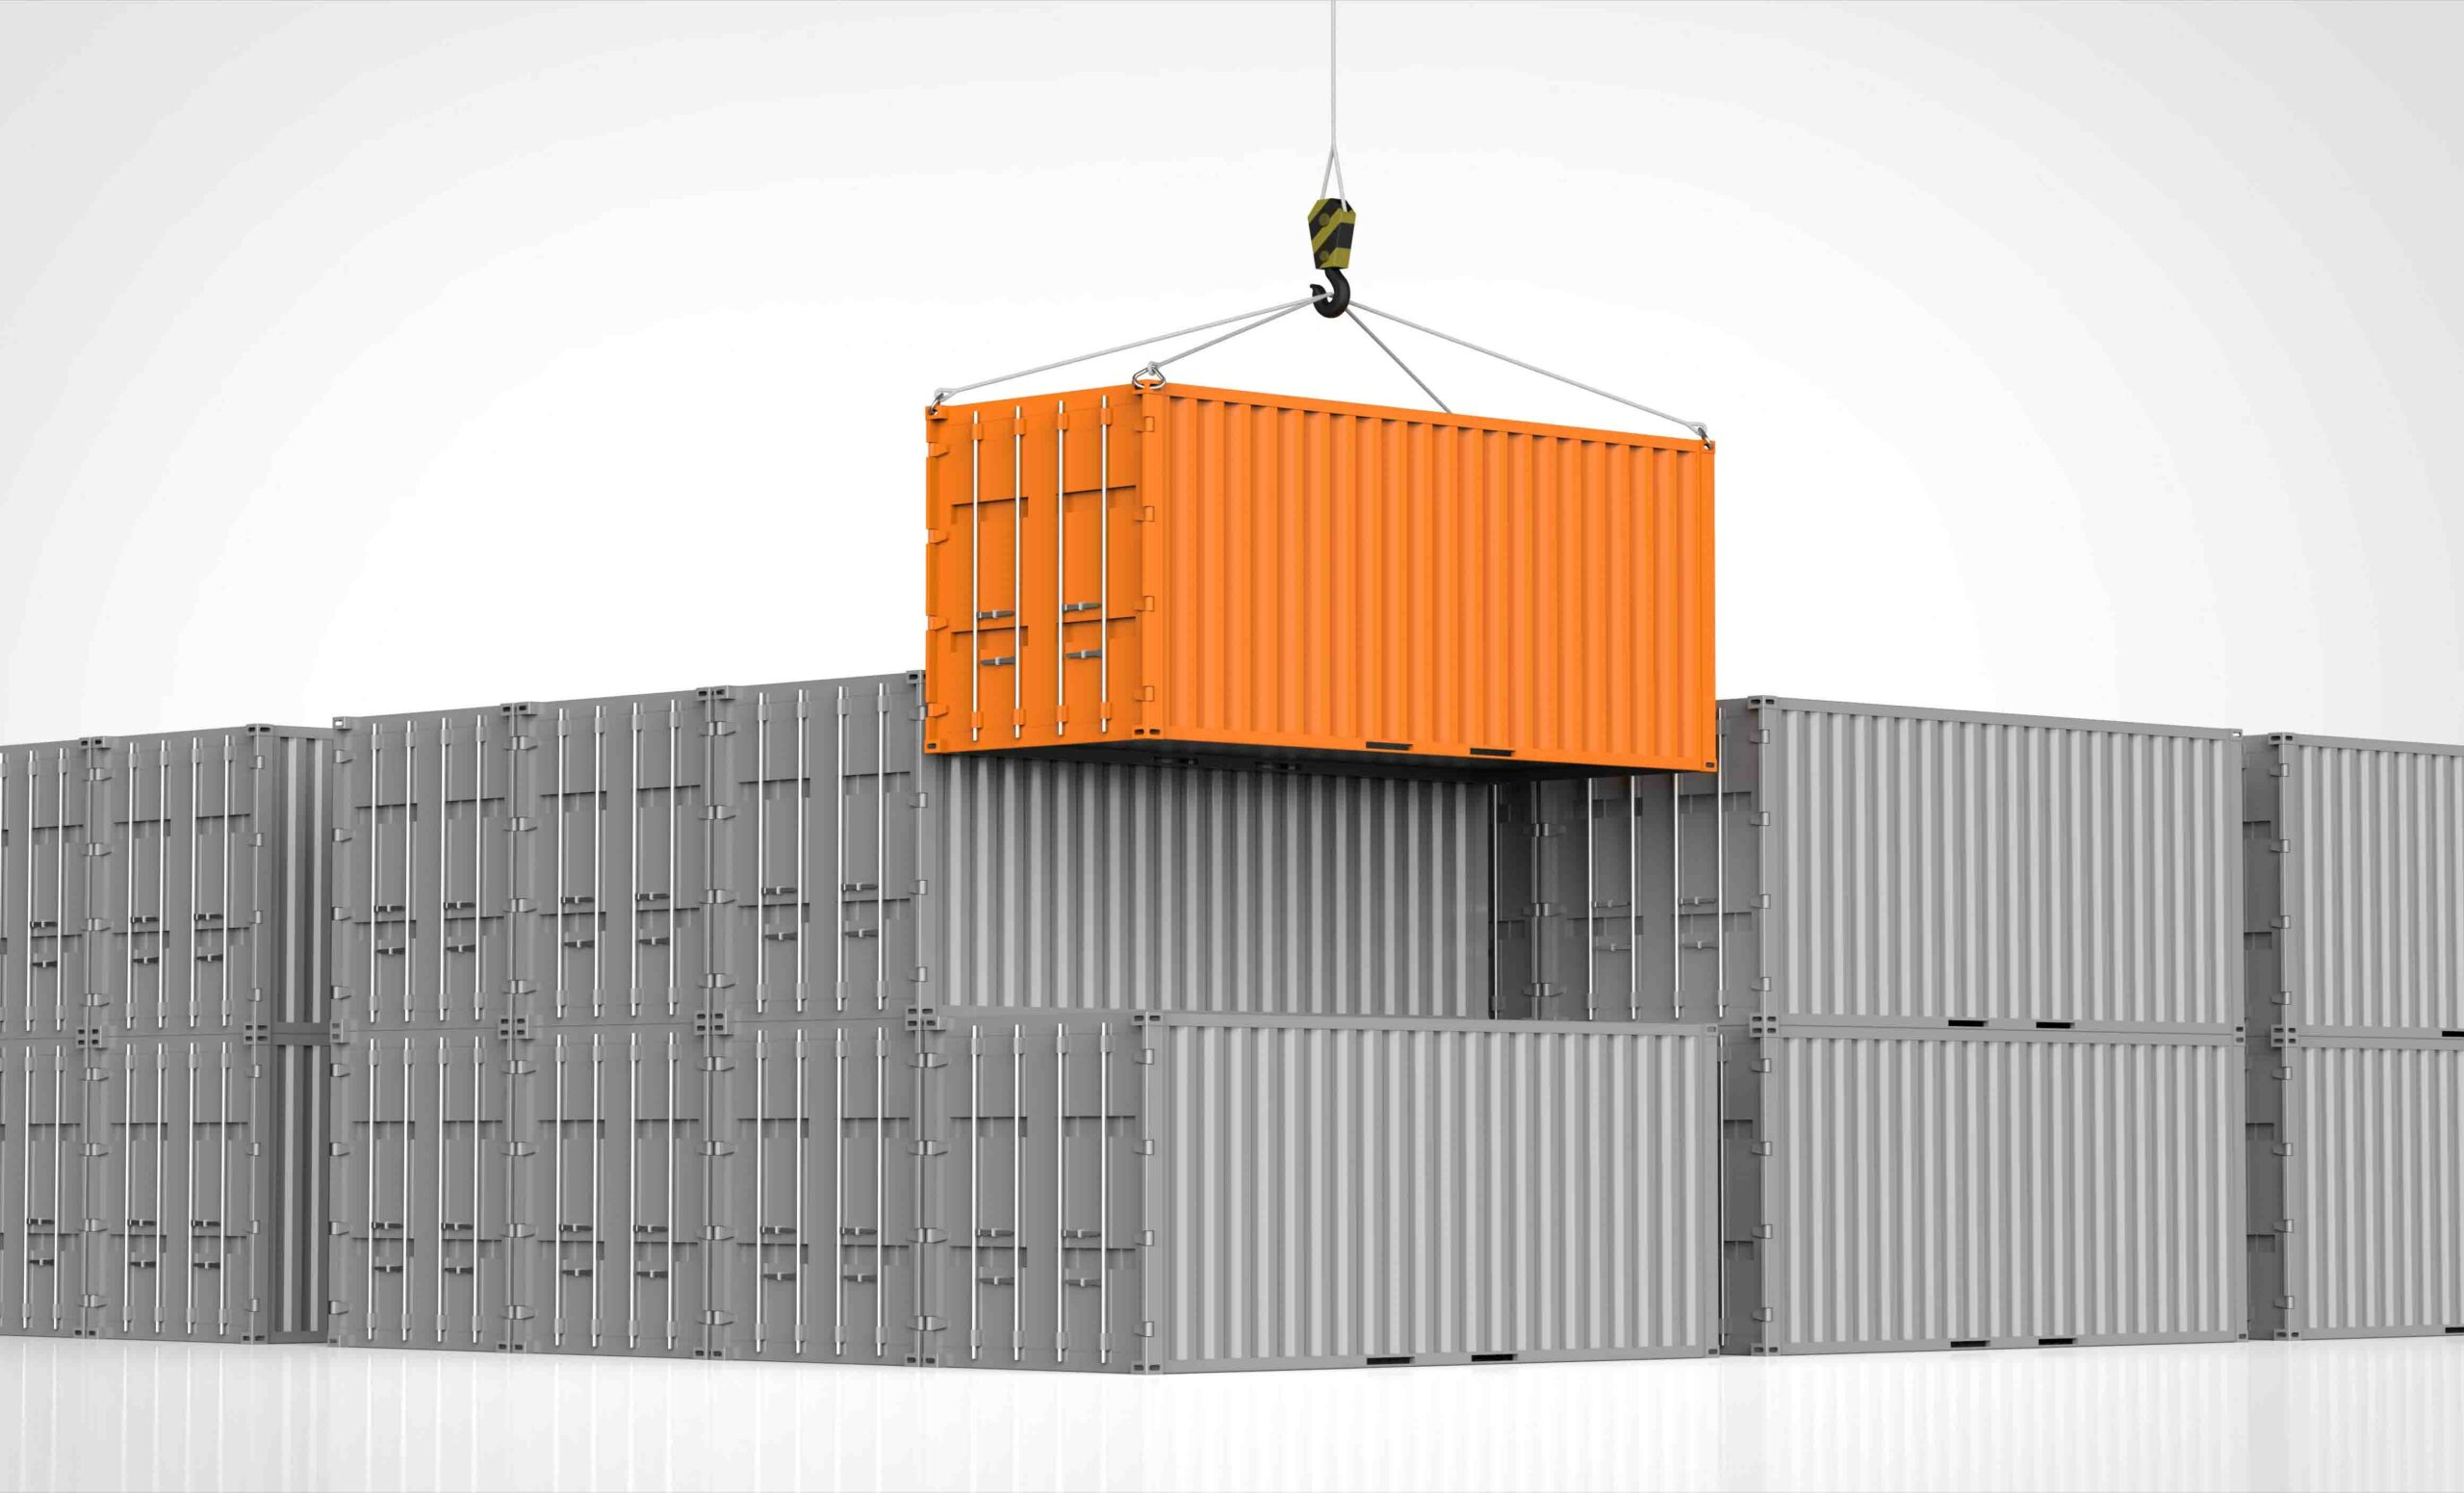 Three Chinese companies control global container production Apollo Cargo Alliance